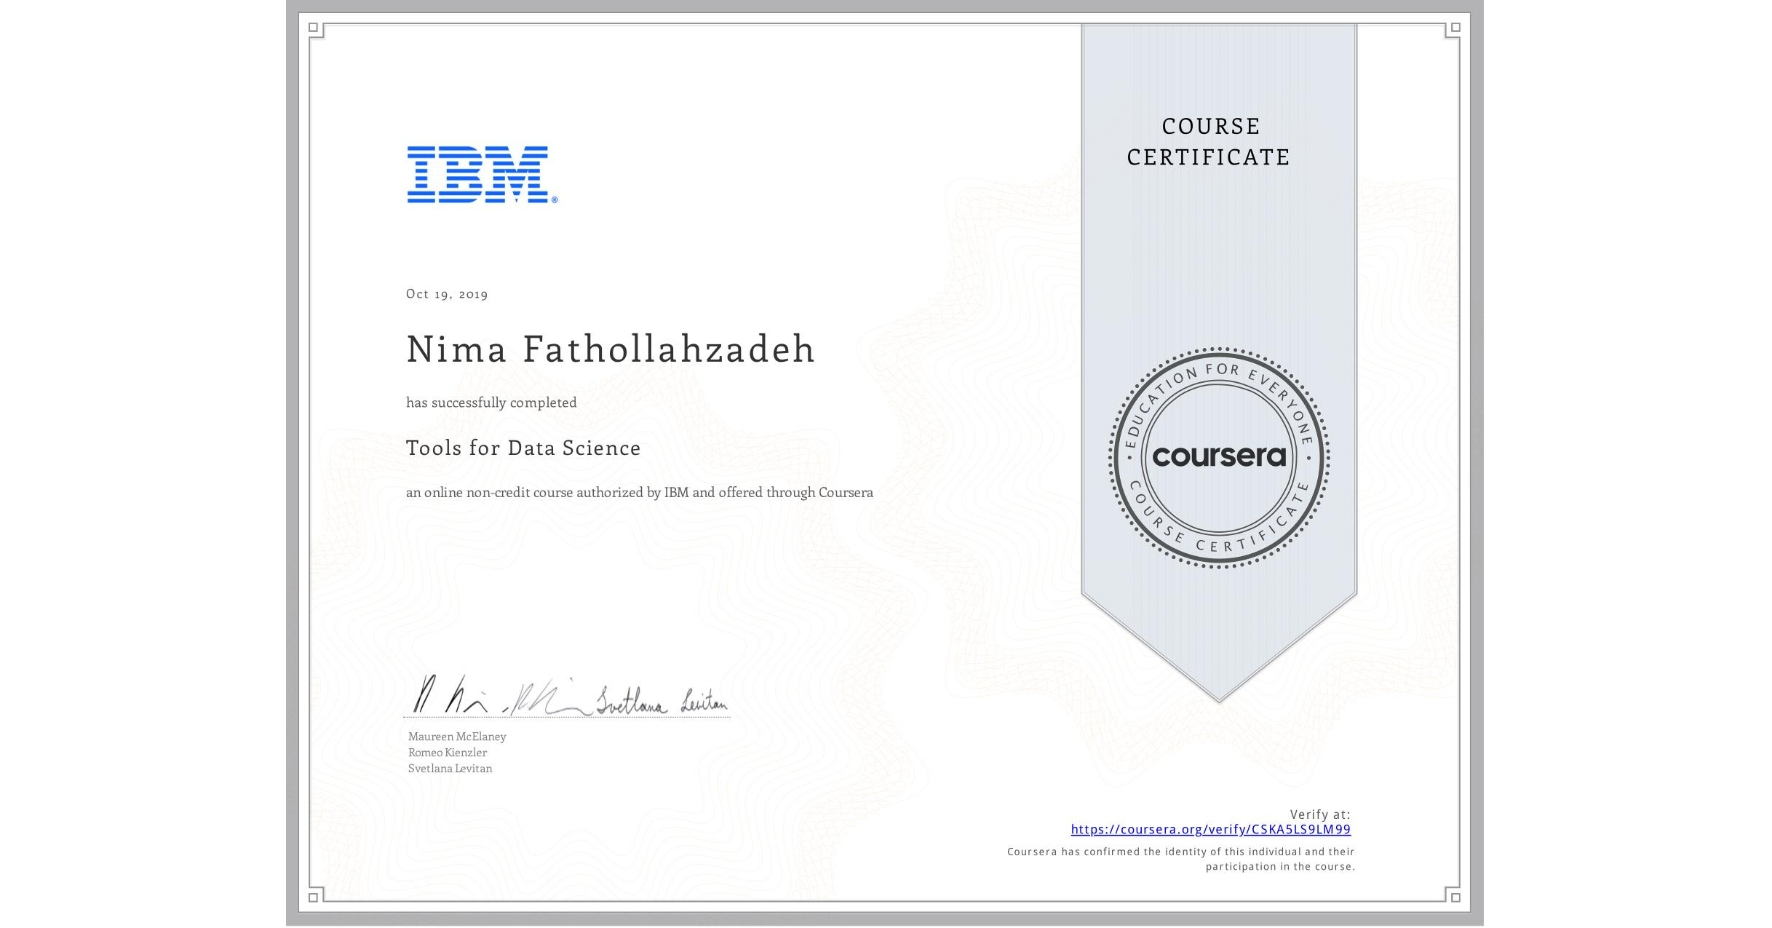 View certificate for Nima Fathollahzadeh, Tools for Data Science, an online non-credit course authorized by IBM and offered through Coursera